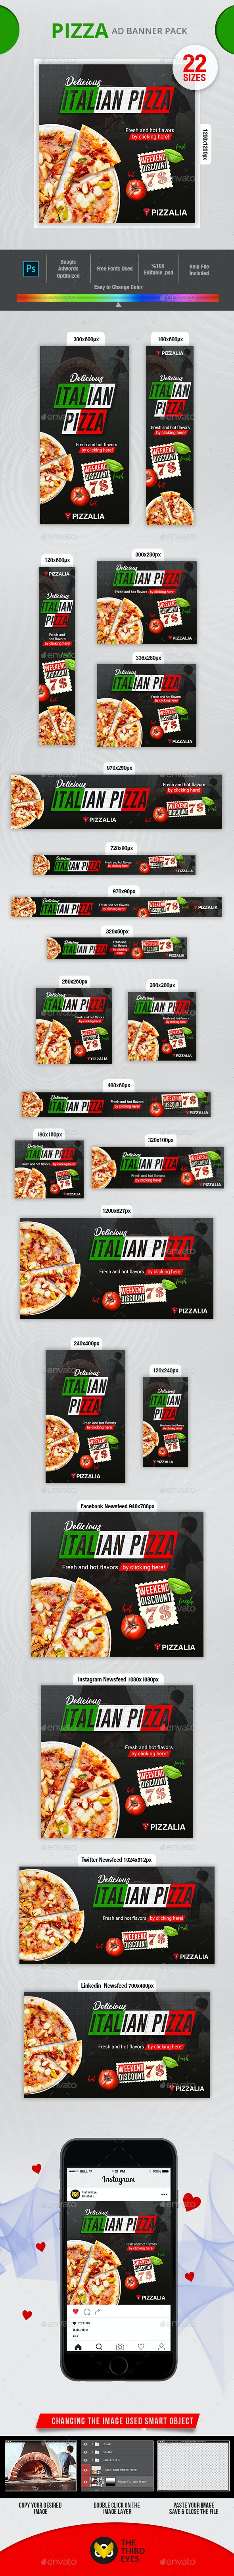 Pizza Banner - Banners & Ads Web Elements